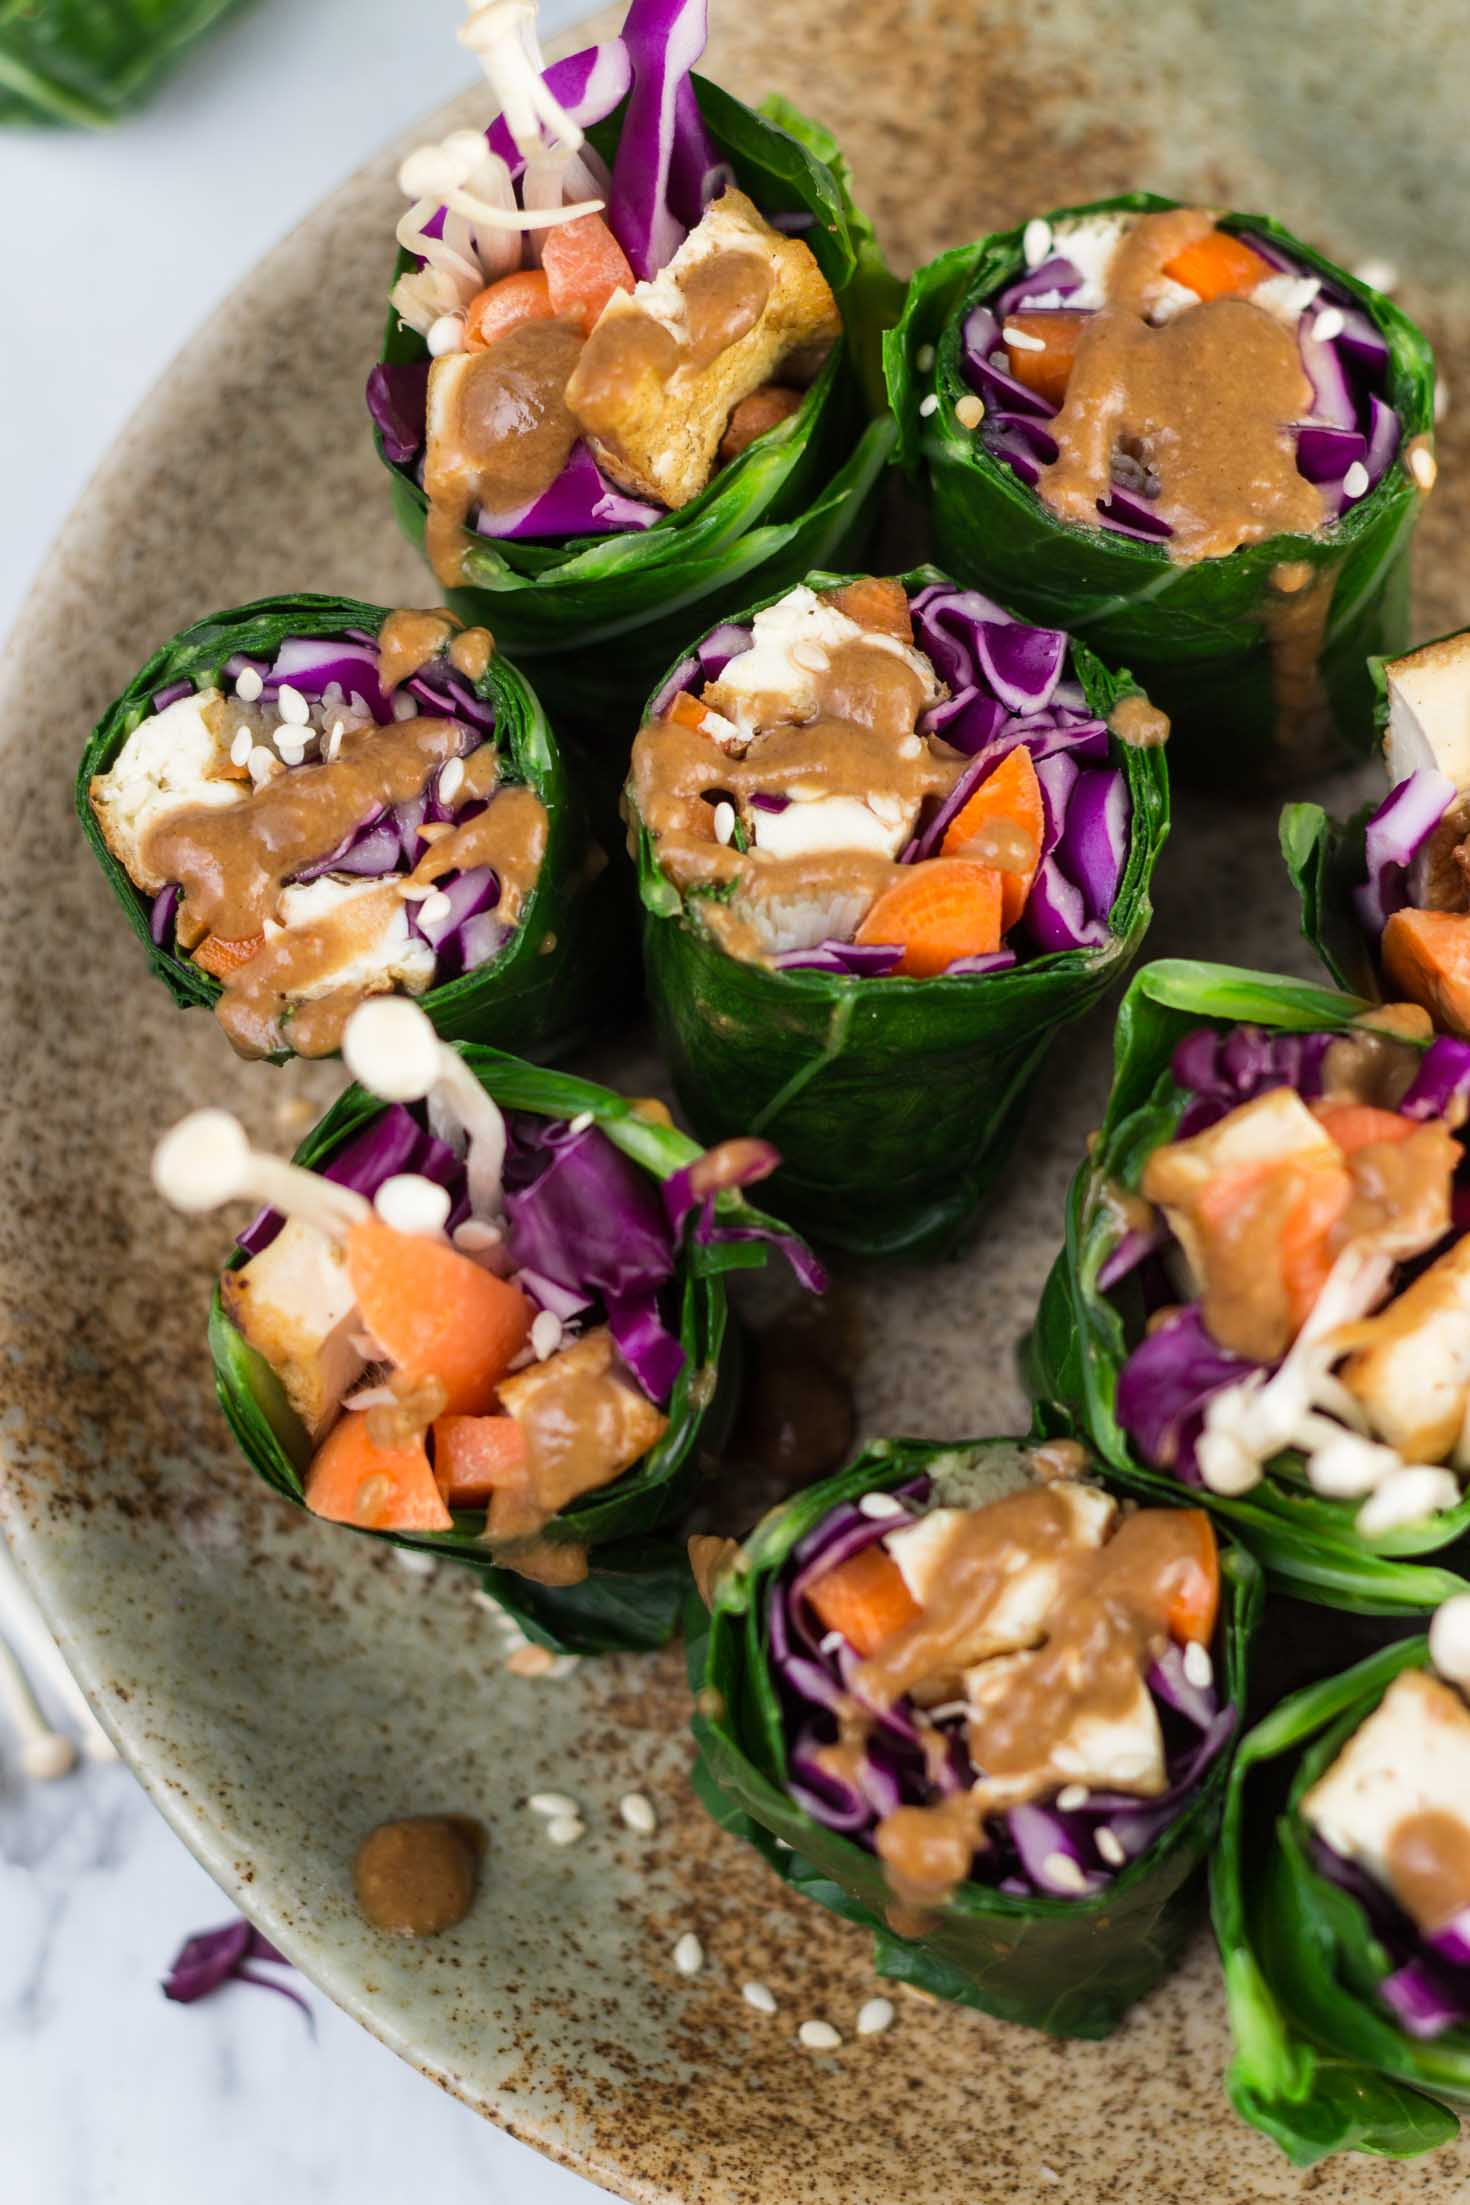 Grain-free Collard Green Rolls with Roasted Tofu and Enoki Mushrooms-close up top view